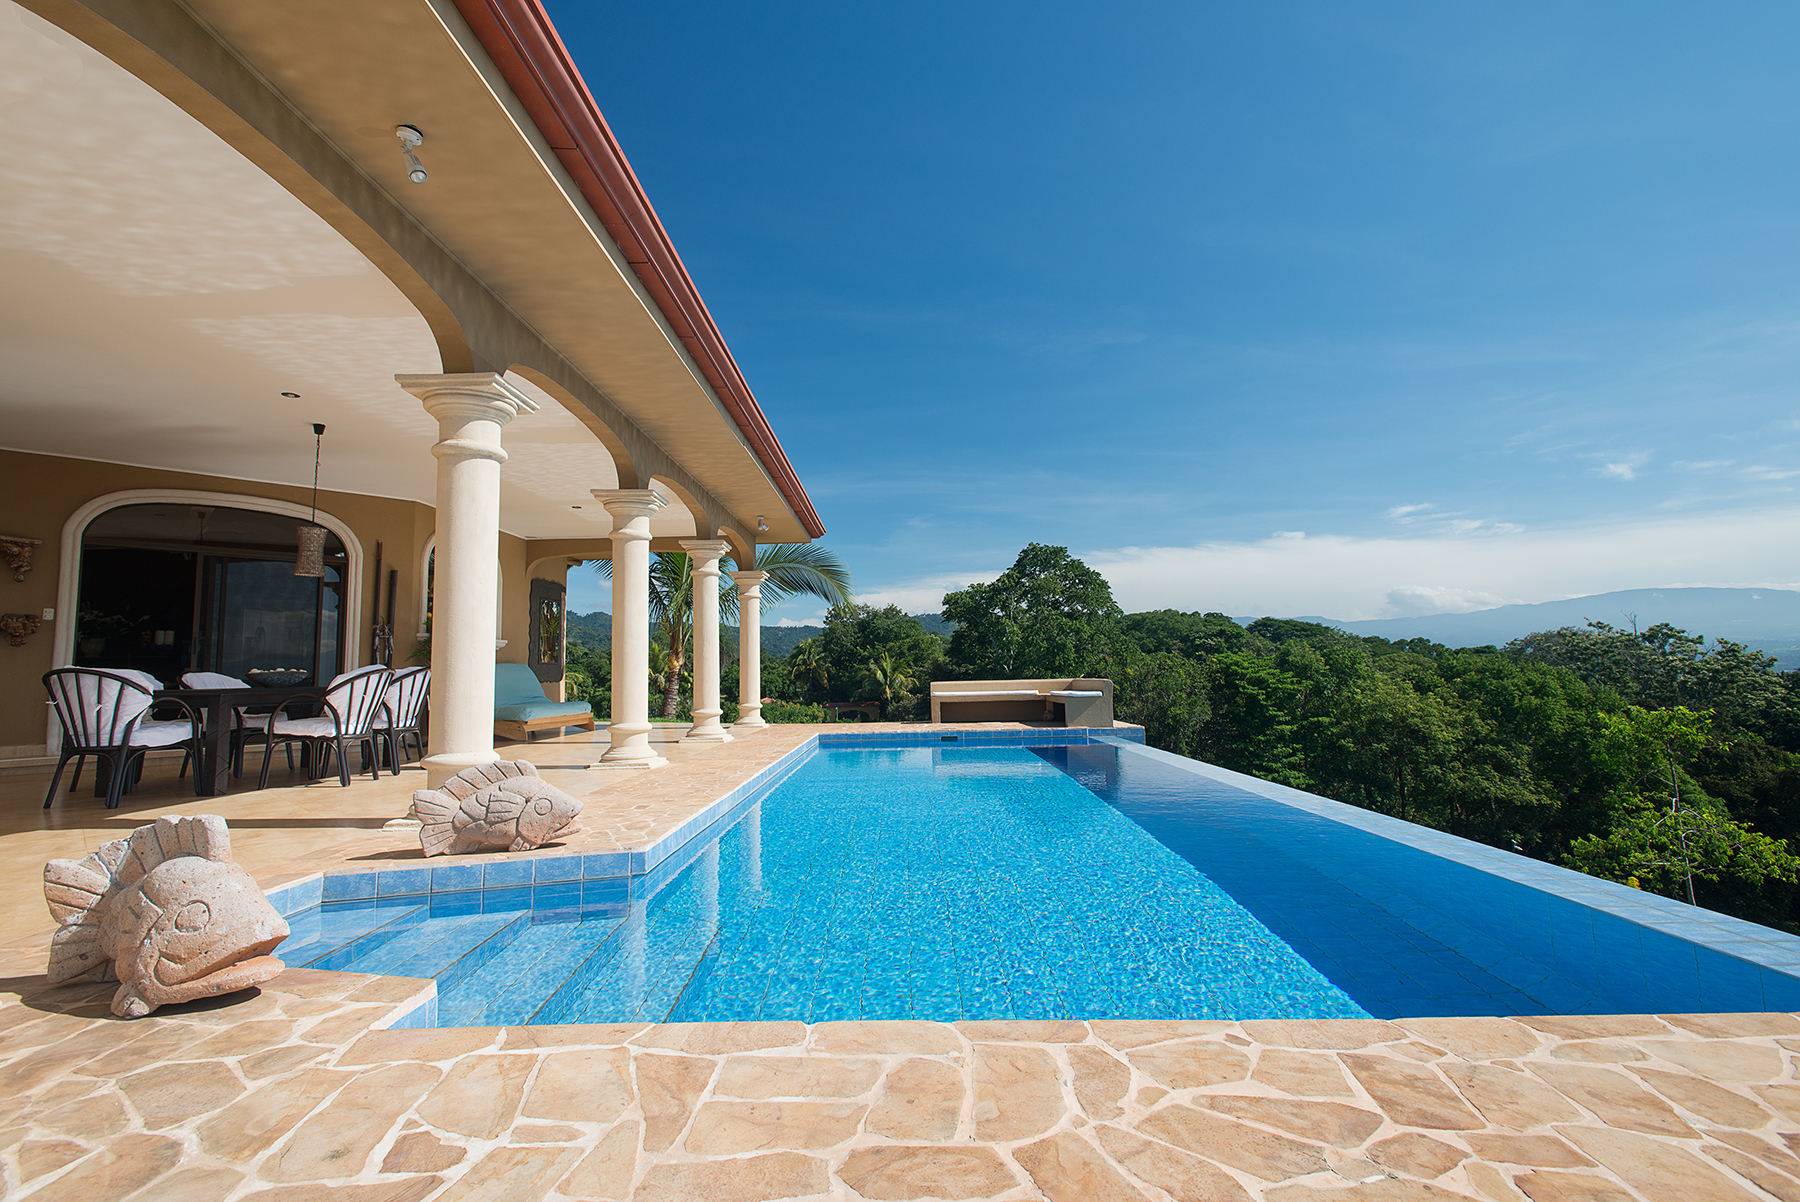 Property For Sale at Breathtaking River Estate in Atenas / FIRE SALE!!!